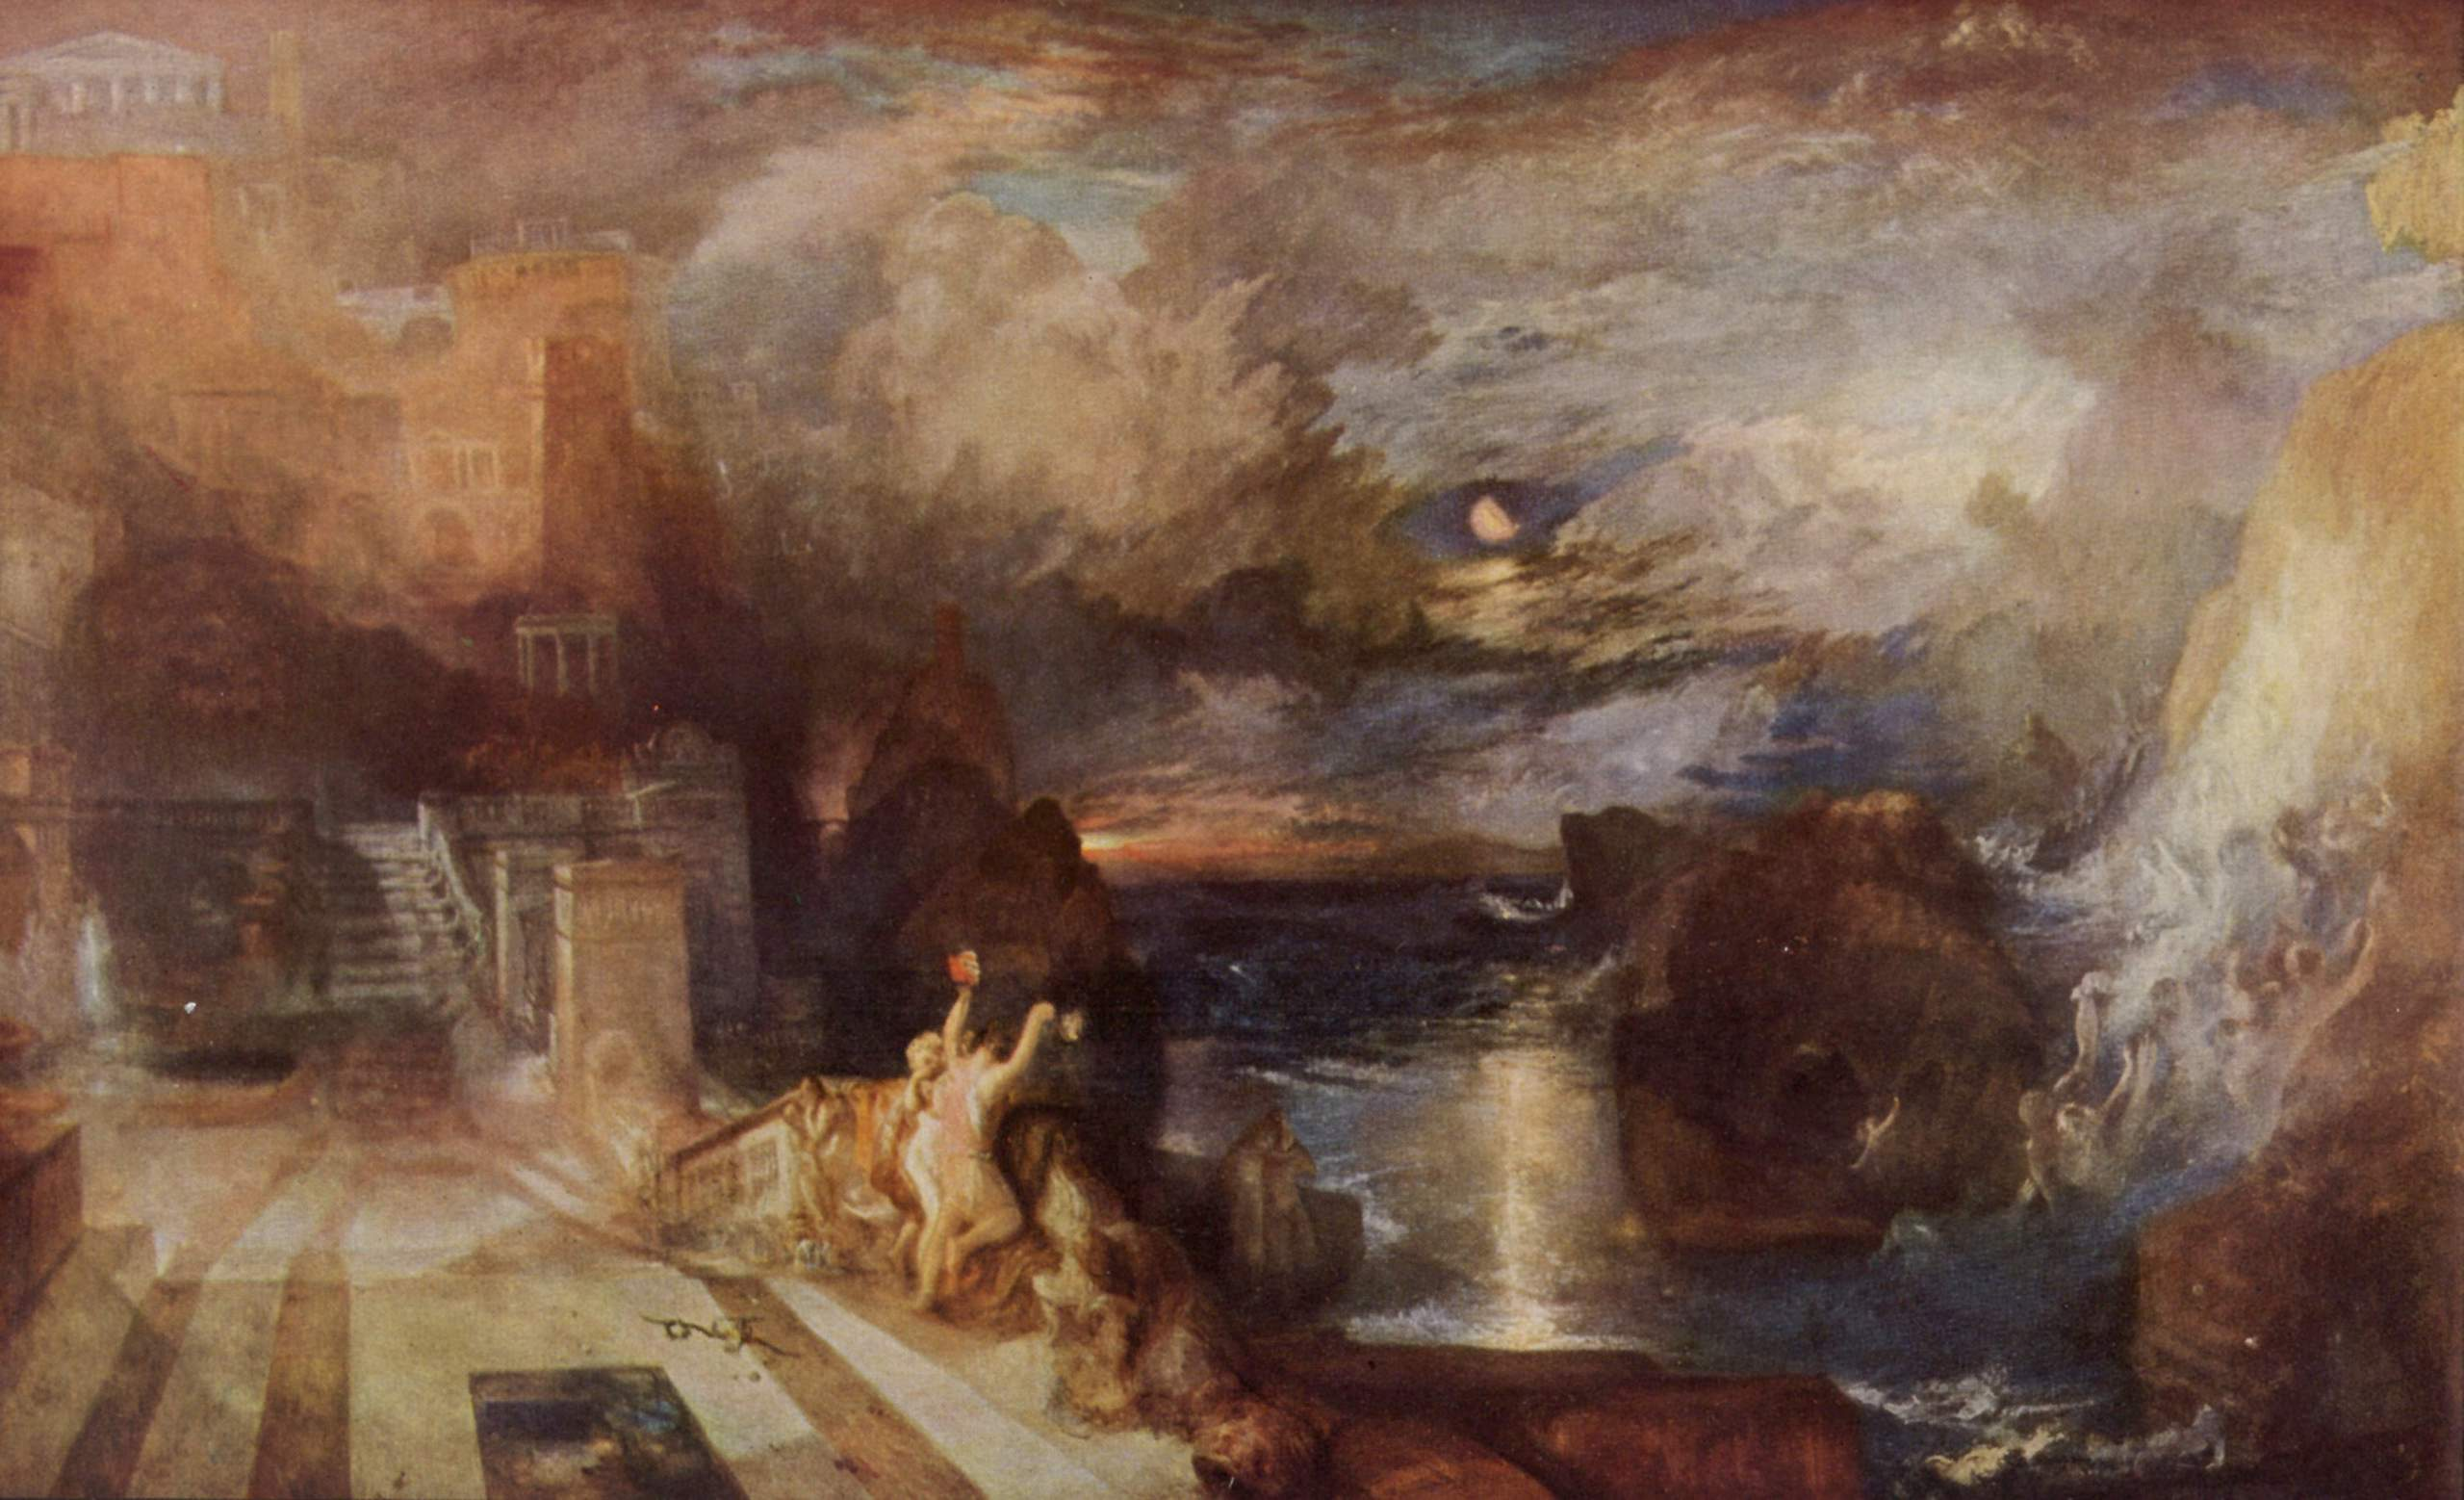 http://upload.wikimedia.org/wikipedia/commons/3/39/Joseph_Mallord_William_Turner_046.jpg